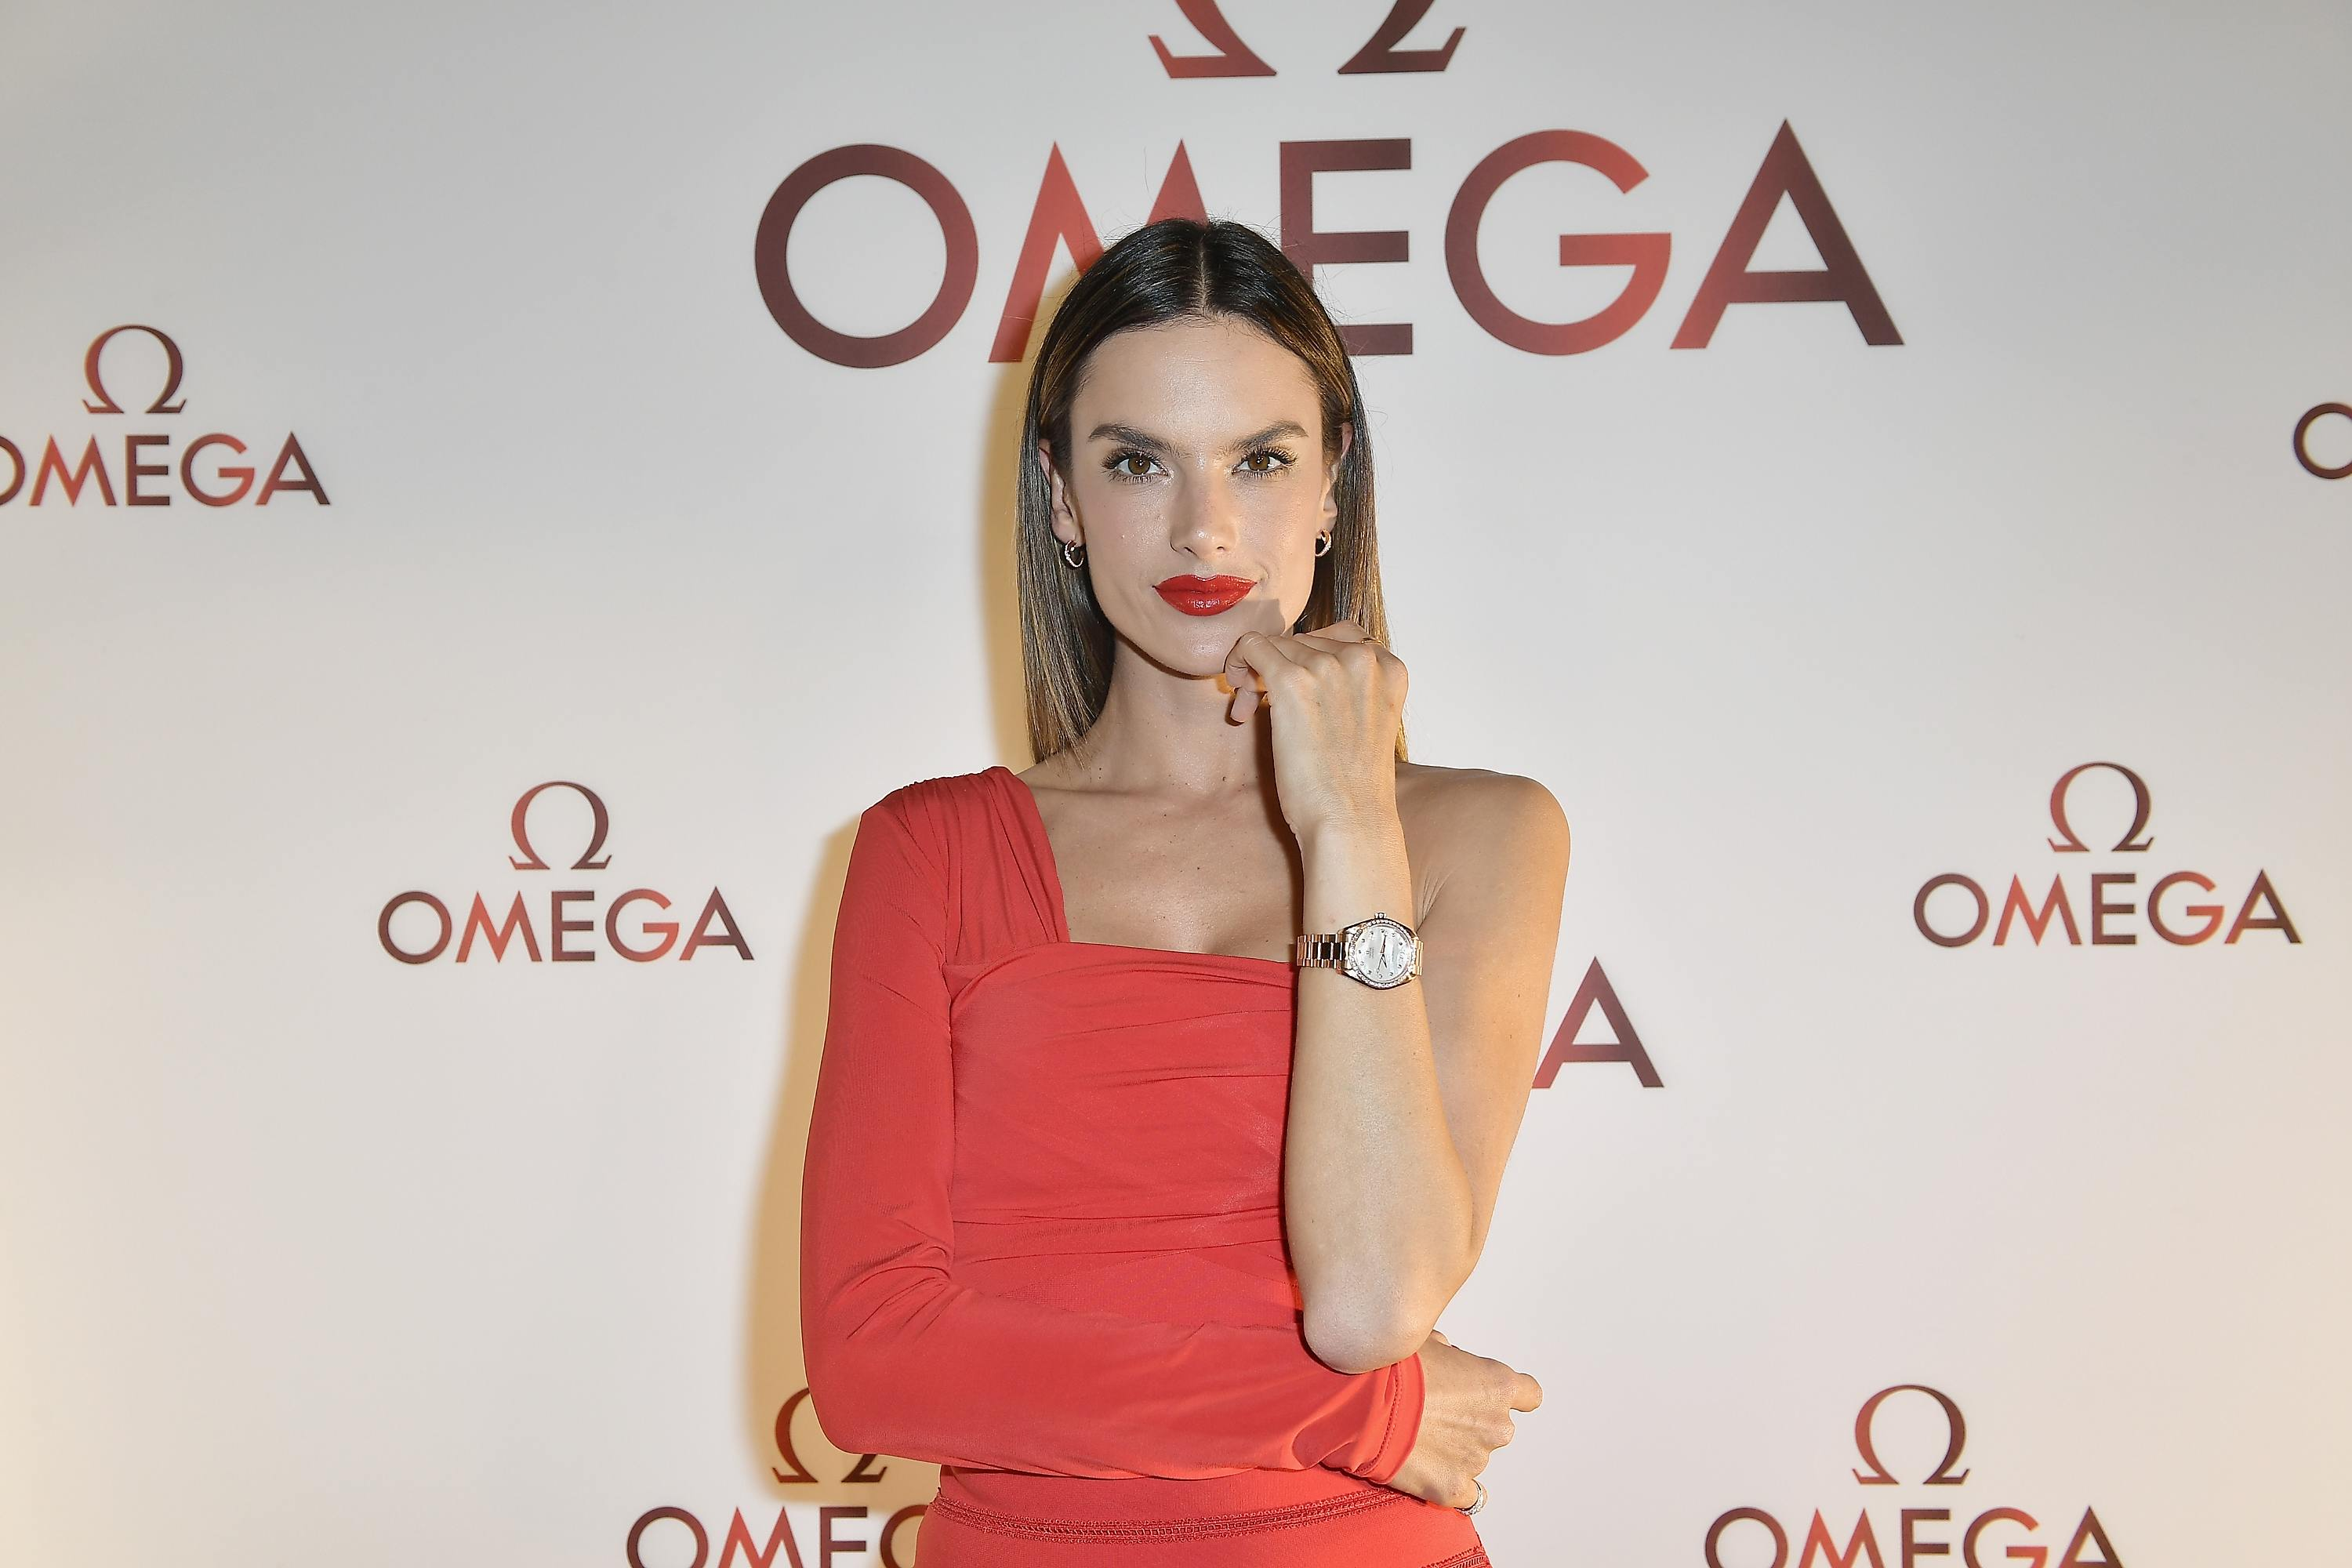 Alessandra Ambrosio Celebrates OMEGA Aqua Terra Collection In Miami